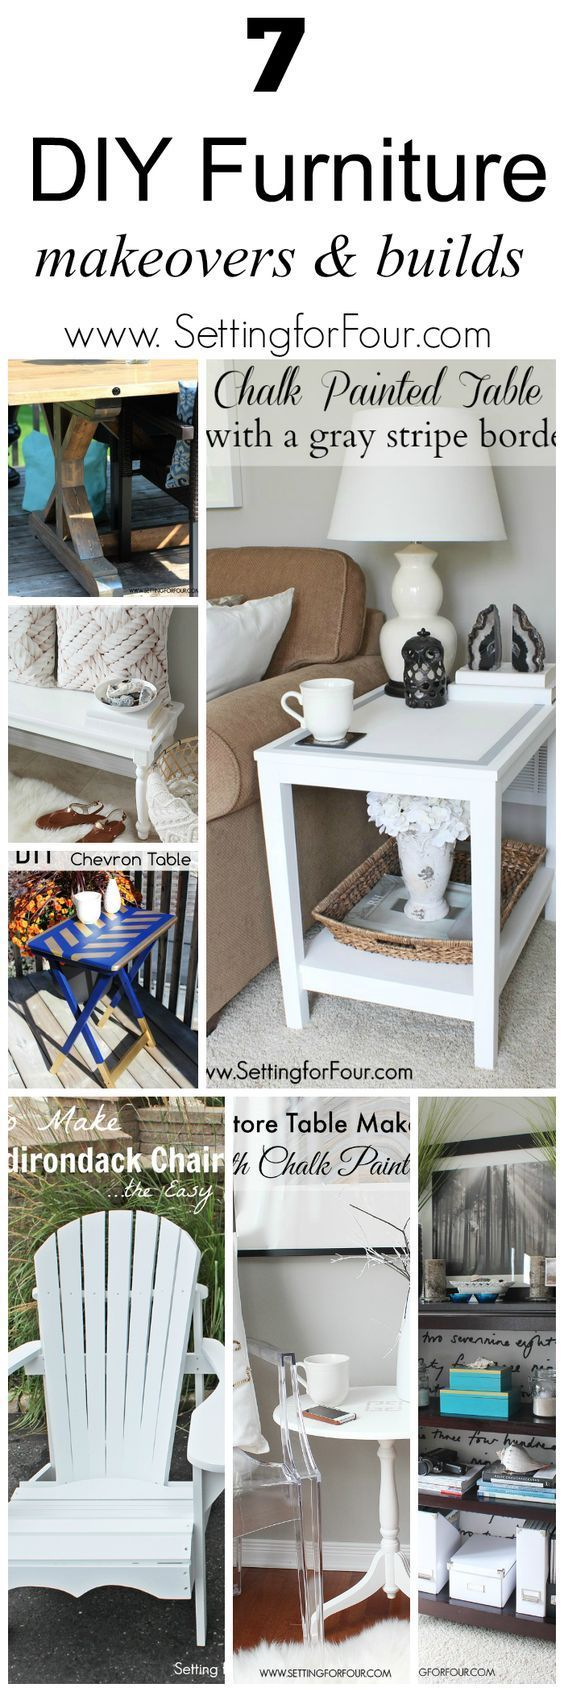 7 Beautiful DIY Furniture Makeovers and Builds. Save money and build your own furniture and refresh dated pieces.